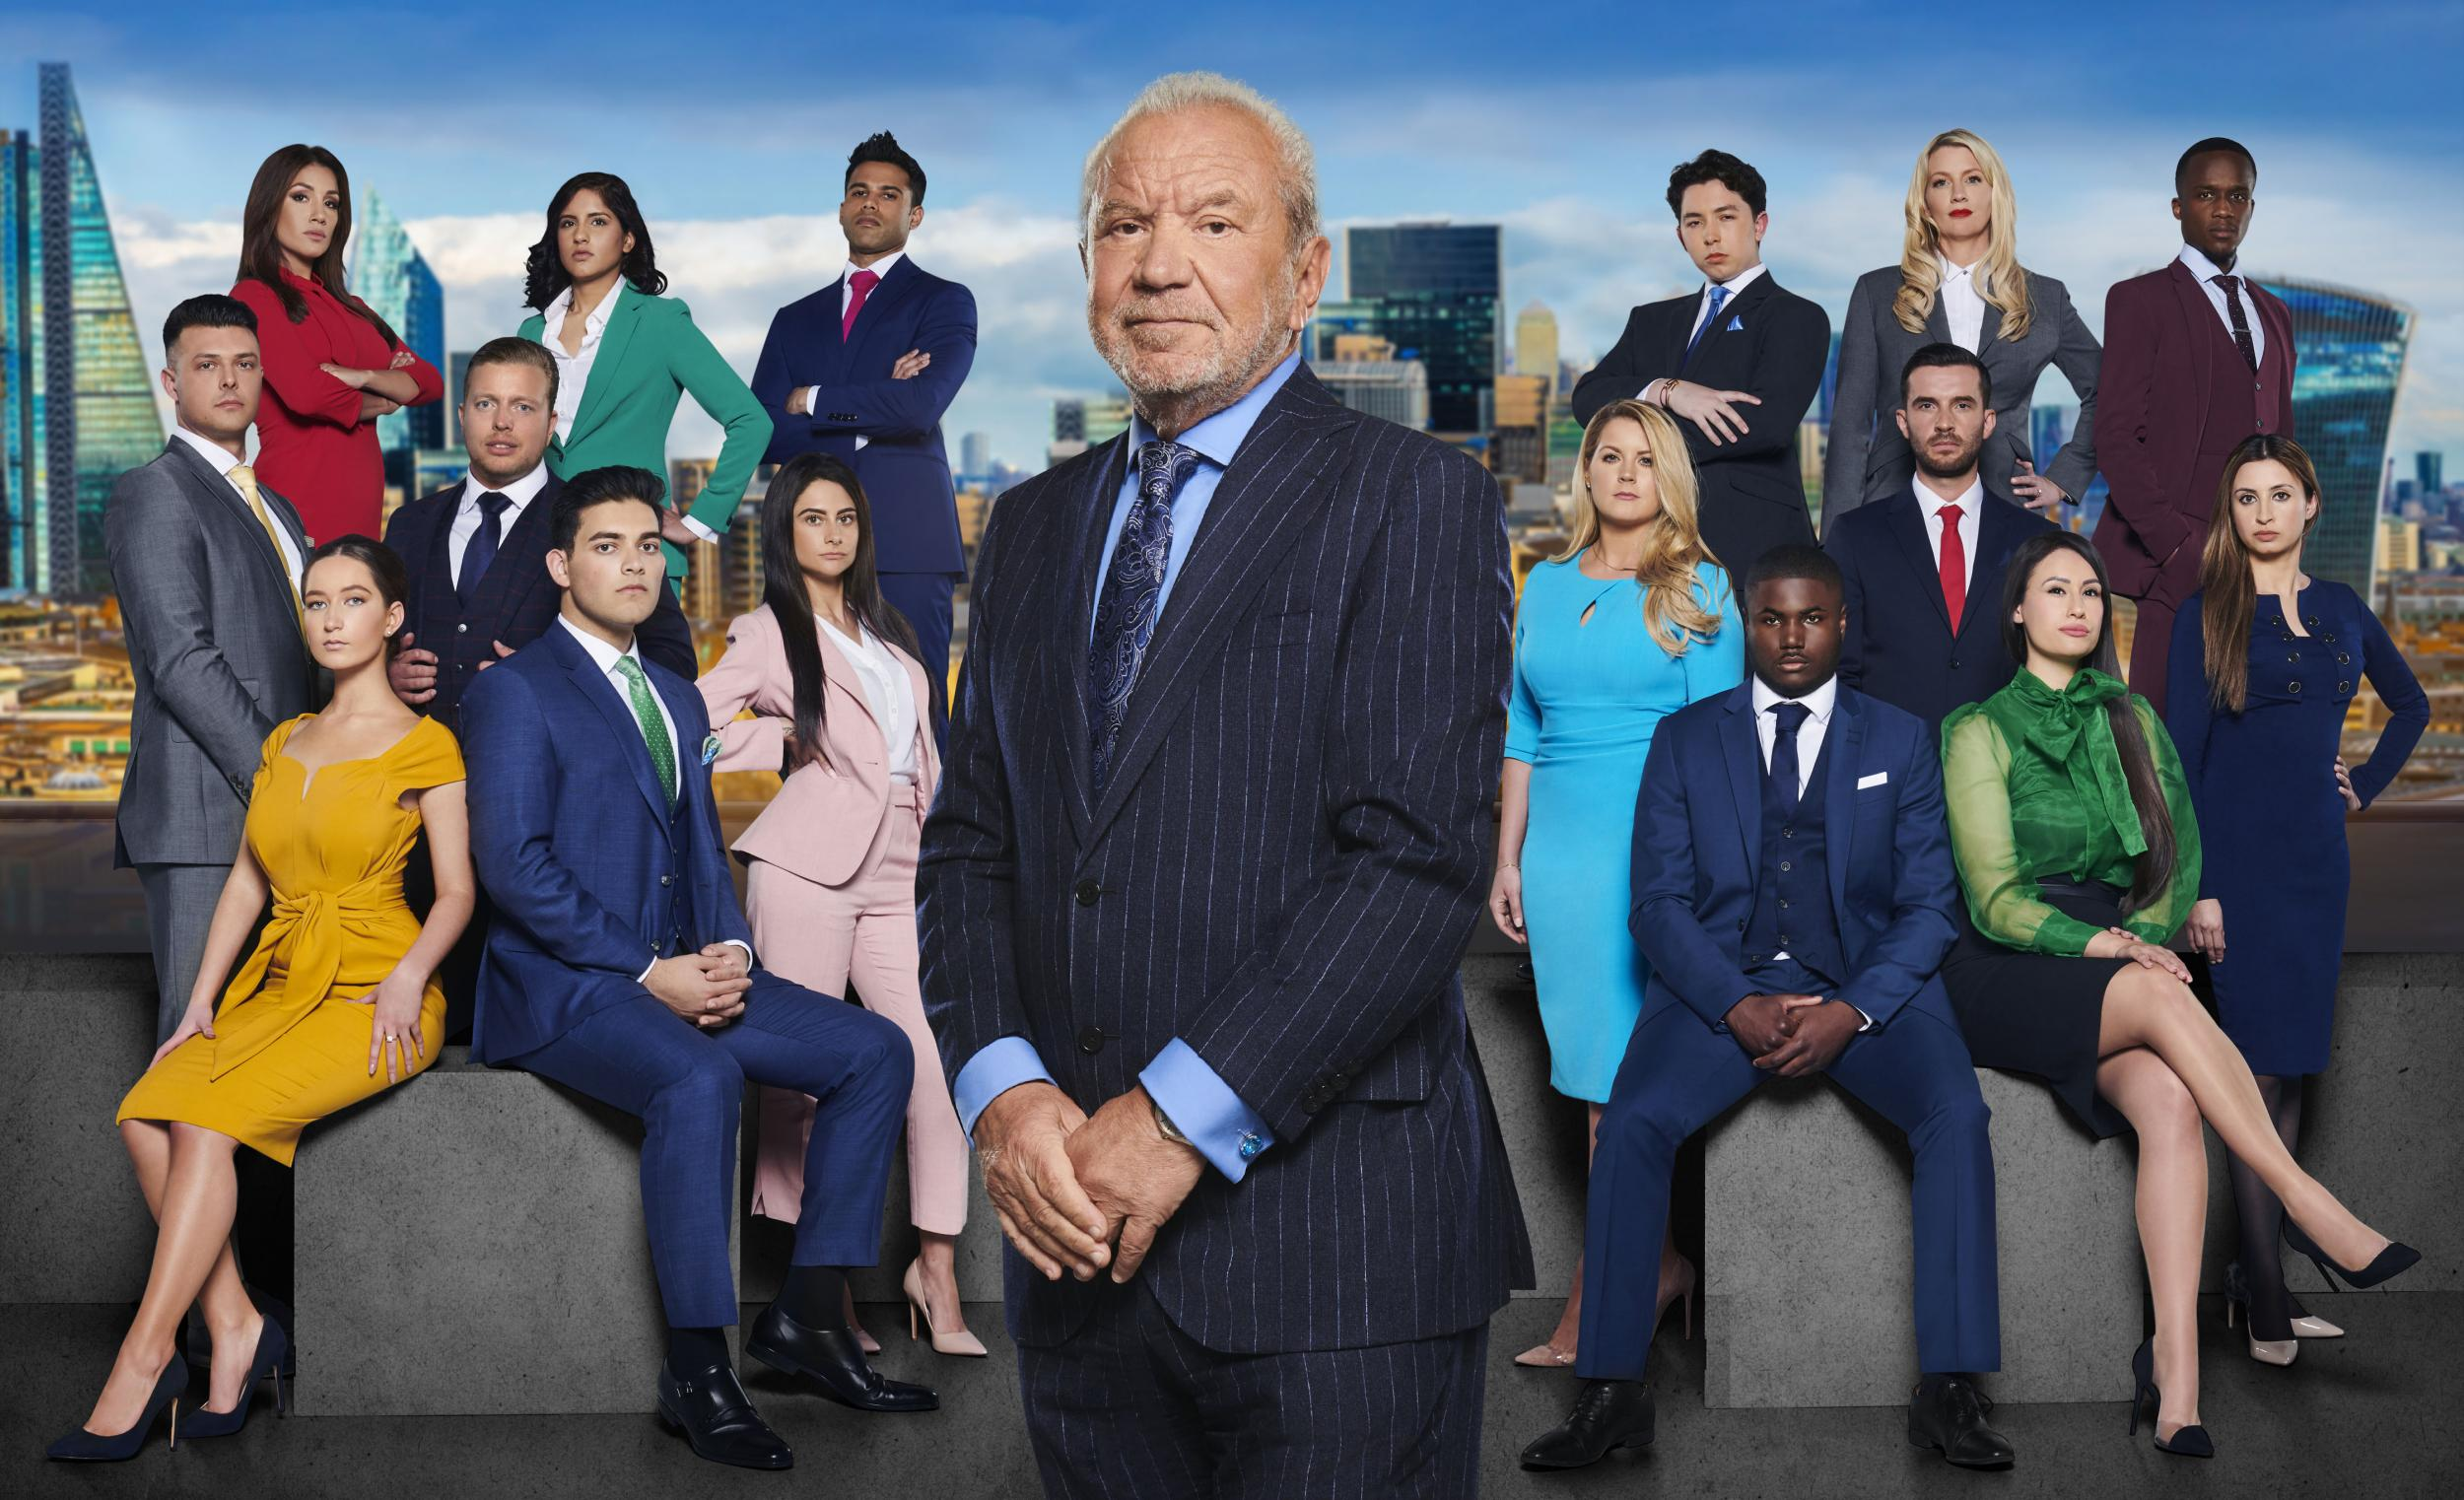 The Apprentice review: Alan Sugar and his group of idiots are back with plenty of comic value